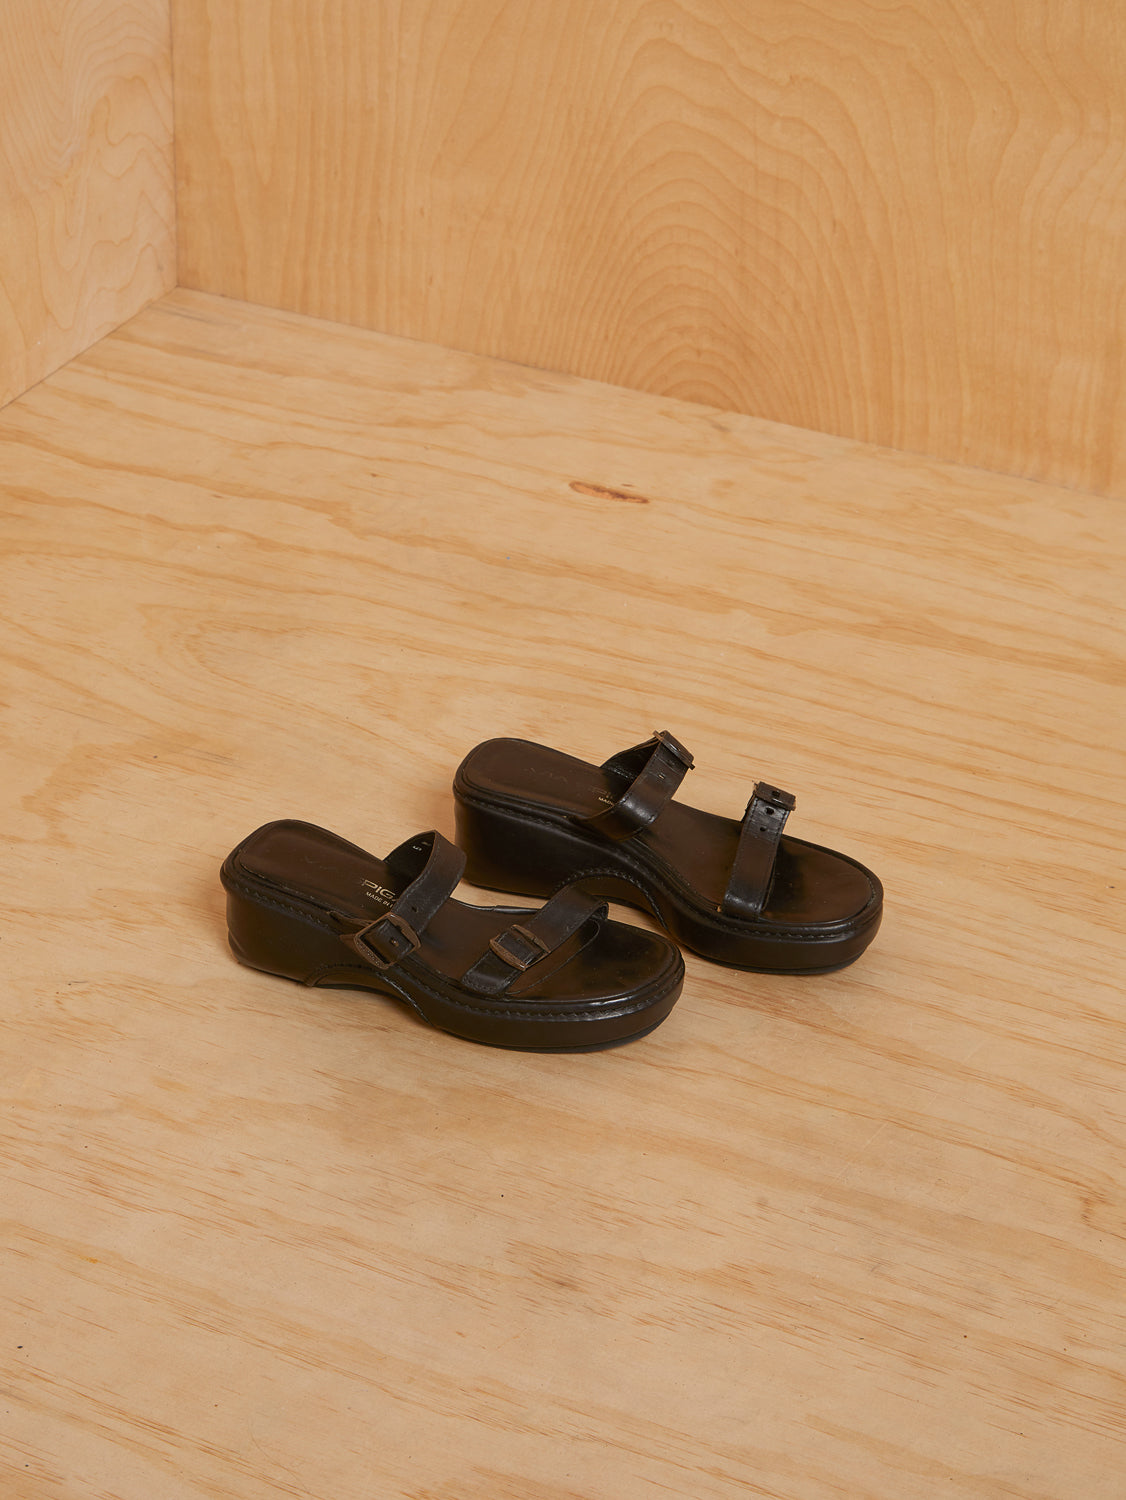 Vintage Double Strap Black Chunky Sandals